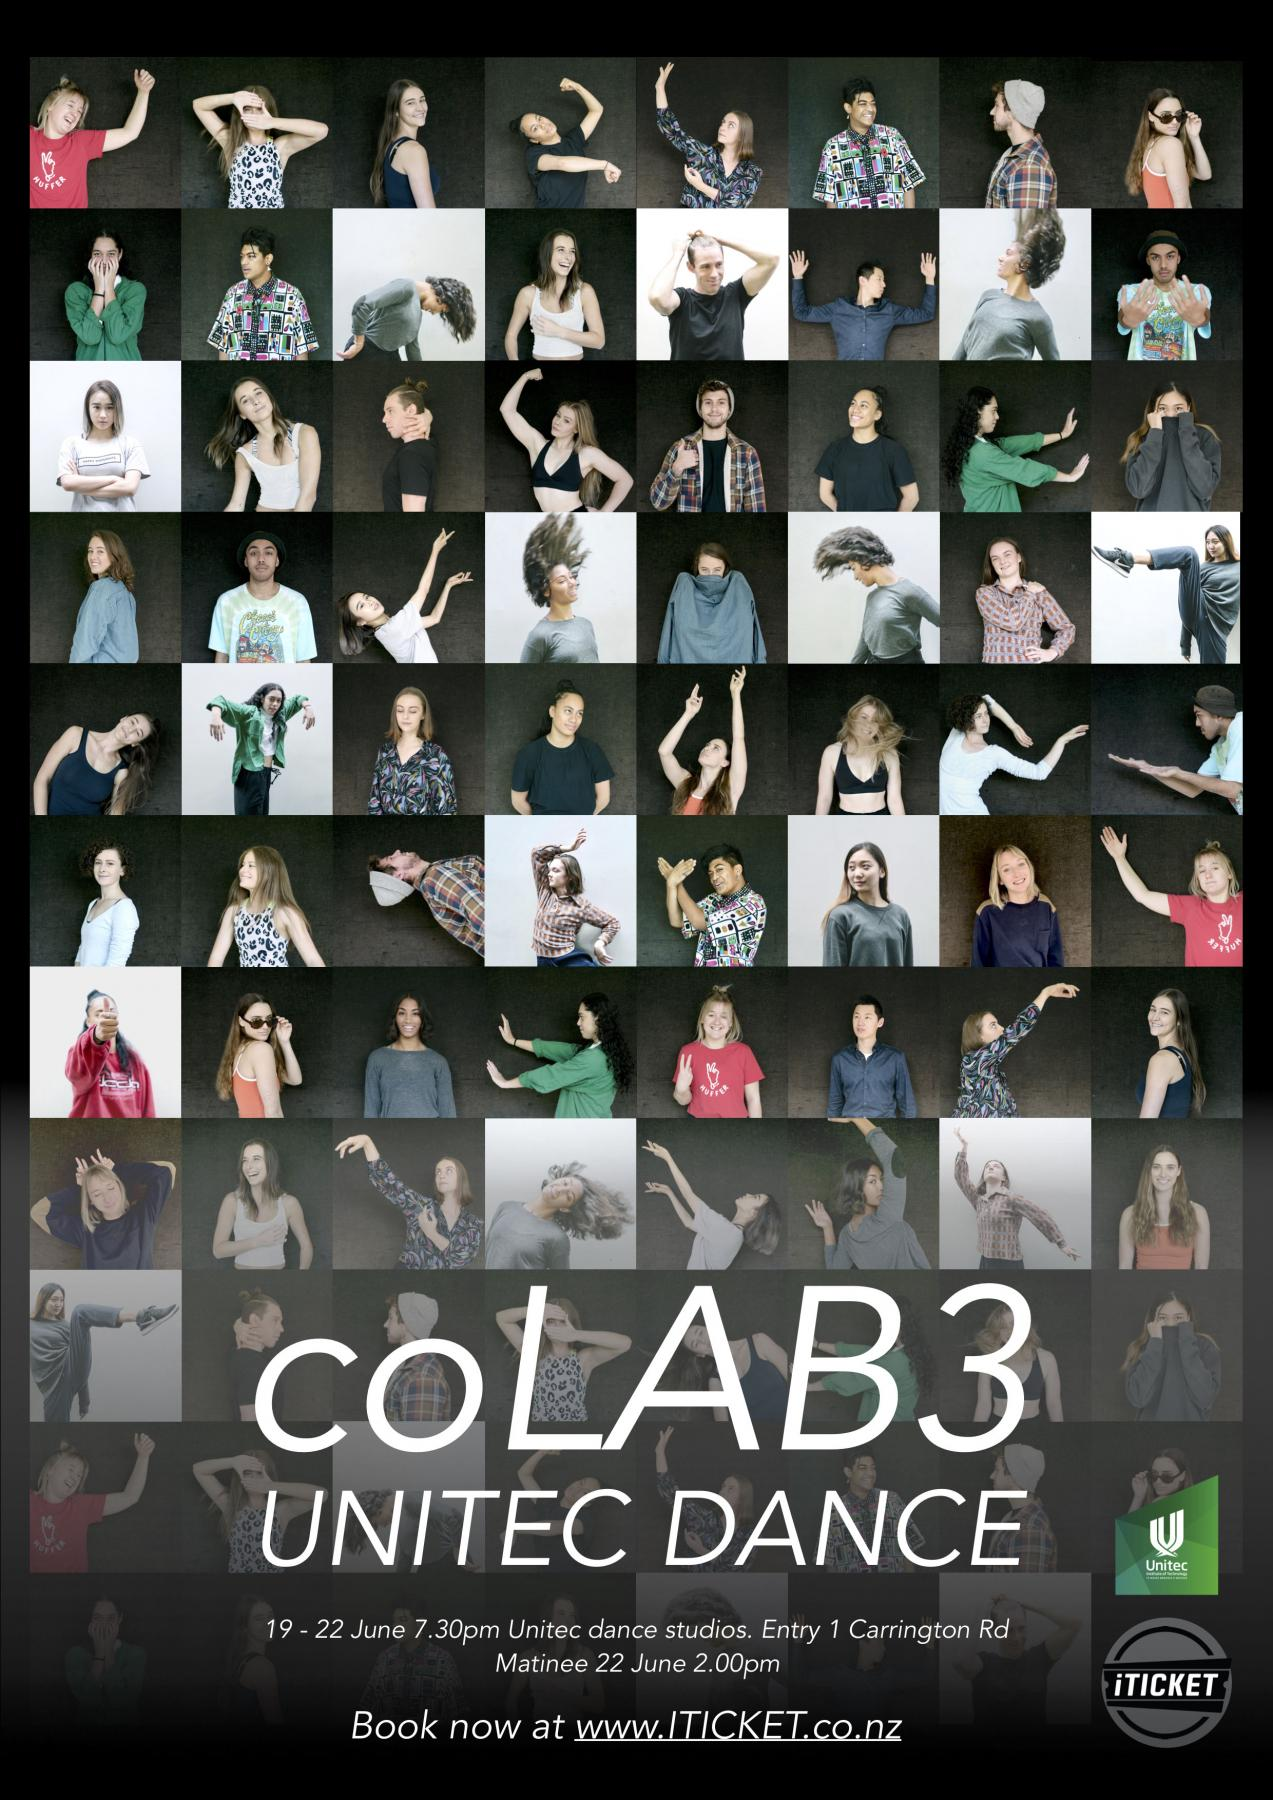 Buy tickets to Unitec's coLAB 3 2019 dance performance at iTicket now